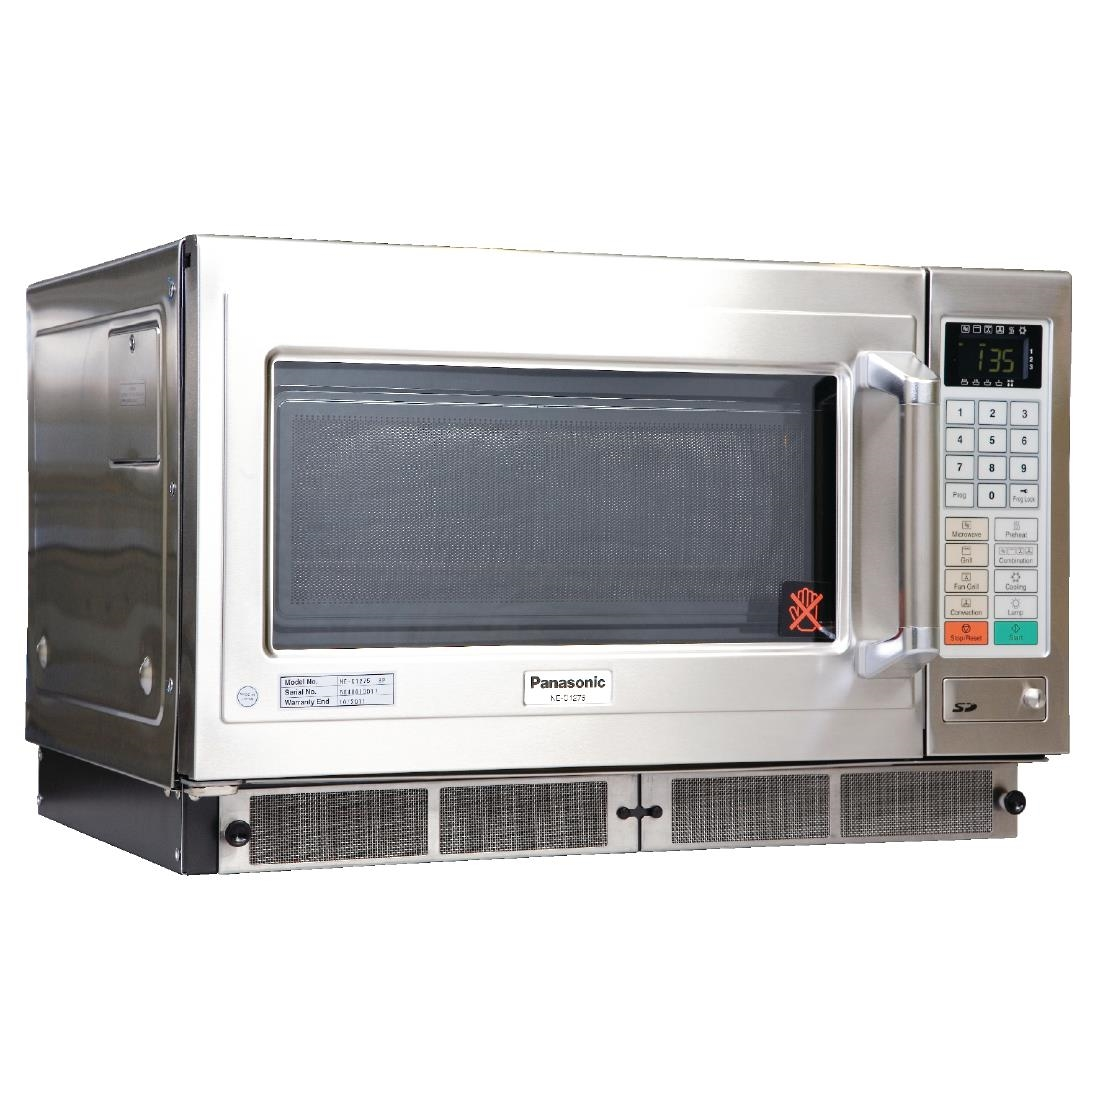 Combination Microwave Oven Panasonic 1800w Combination Microwave Grill Ne C1275